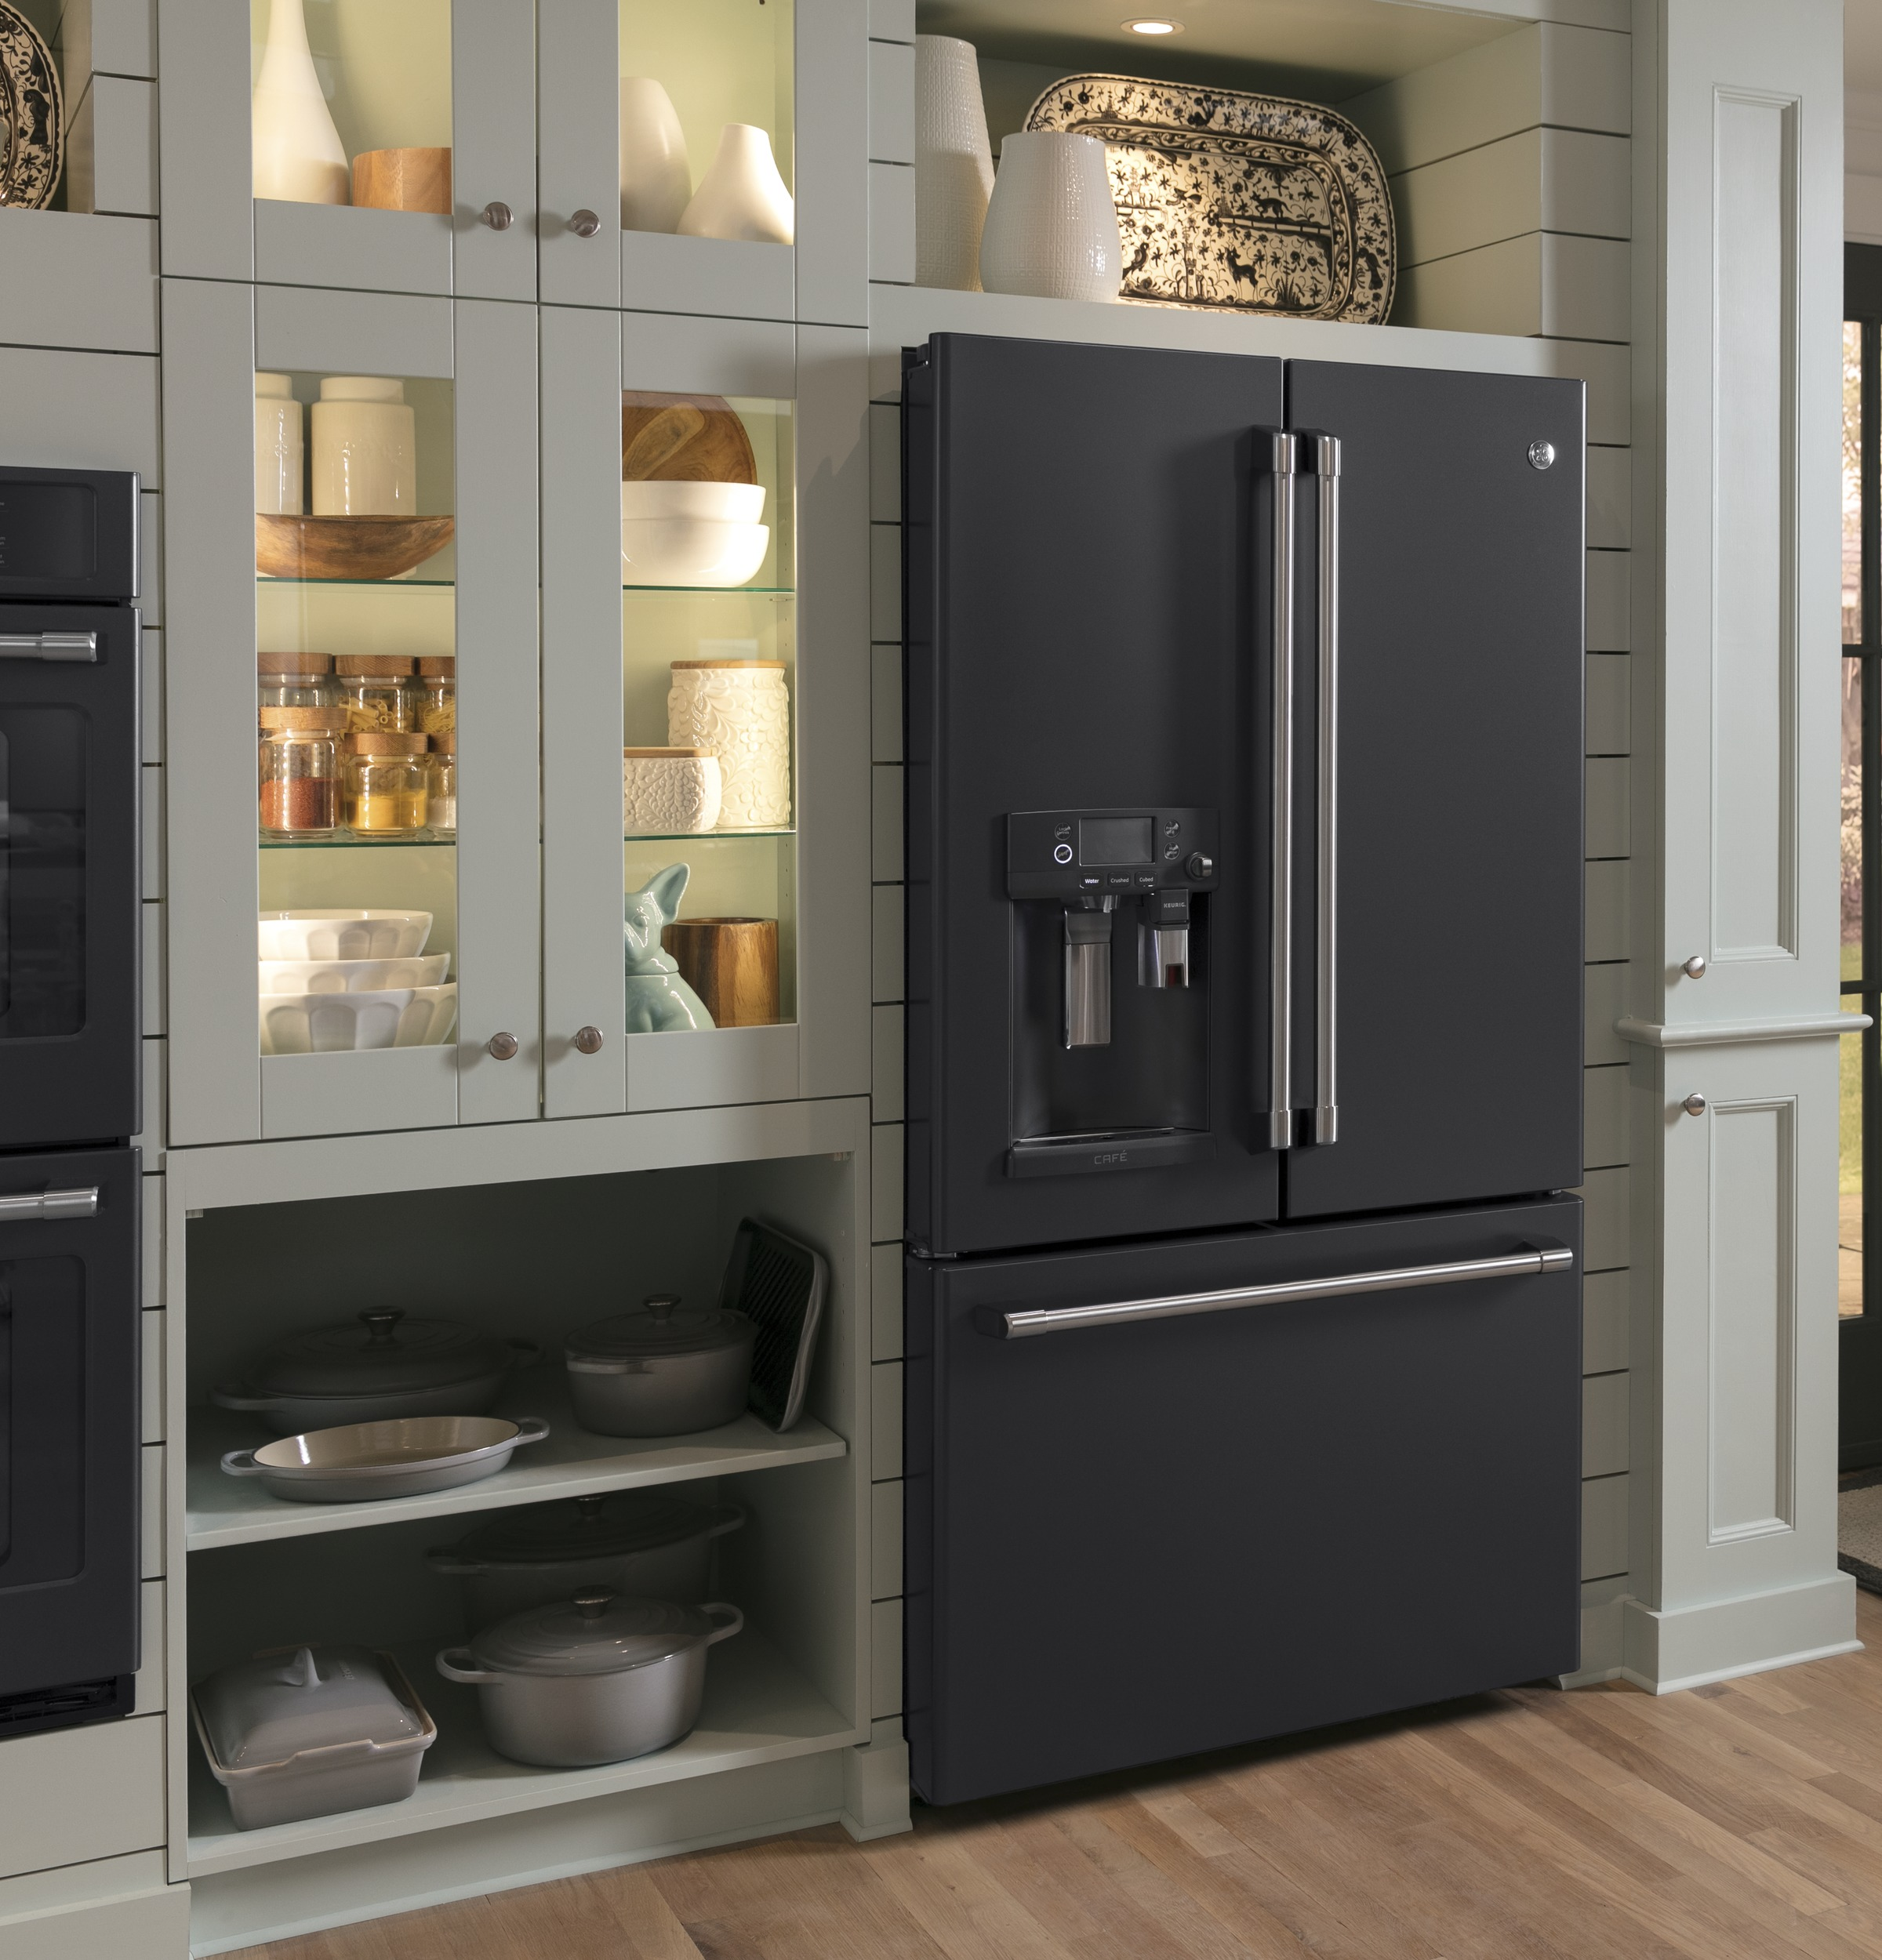 swish refrigerator installation refrigerators new ready exciting kfcoevbls built with panel sample diverting kitchenaid ga used biufdo drawer drawers counter mi